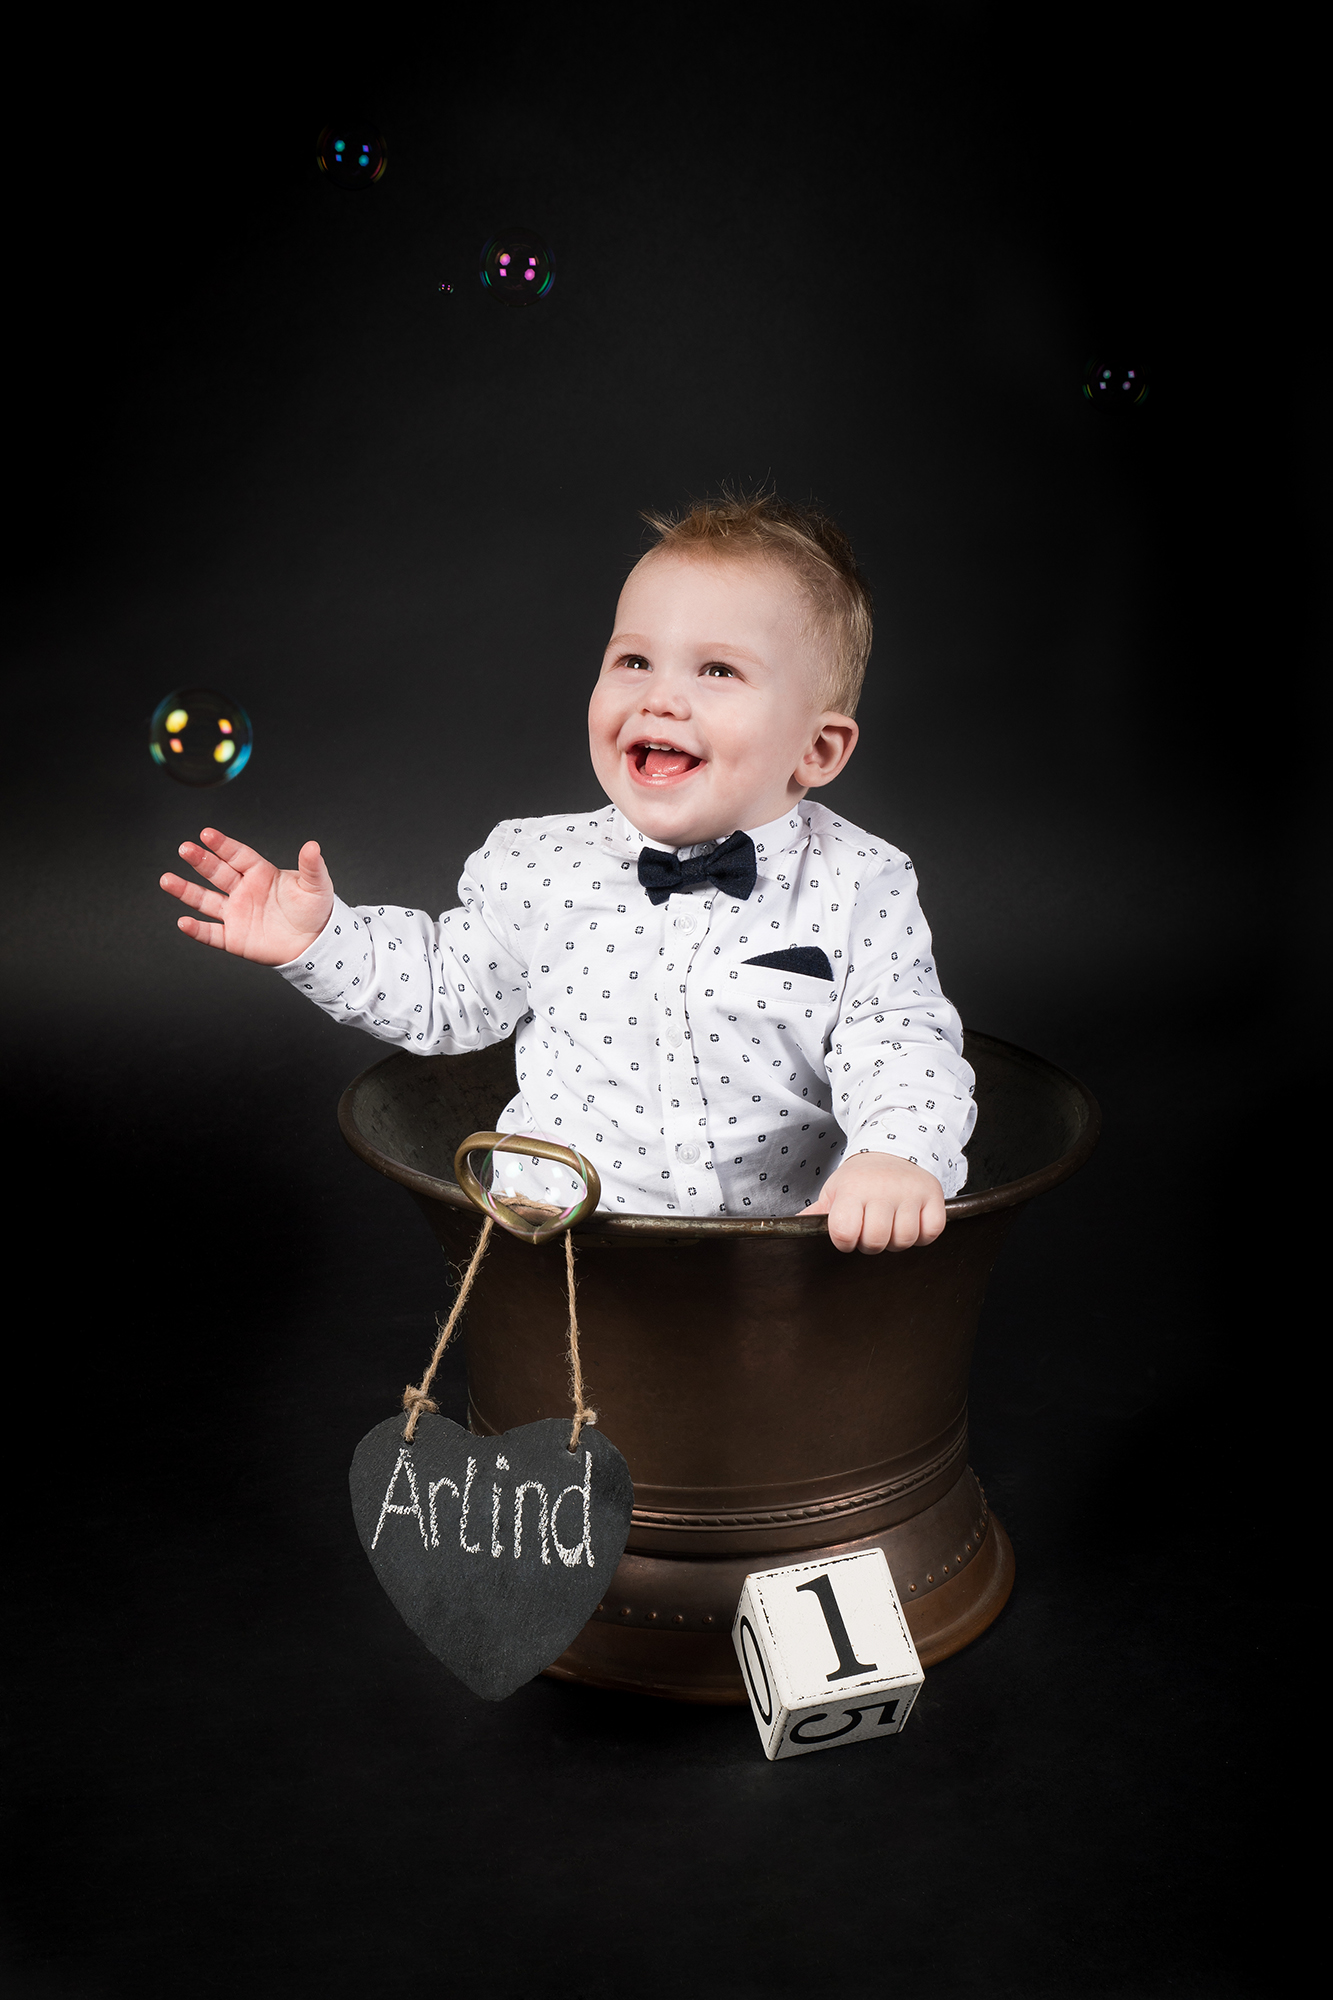 Fotoshooting Kinder